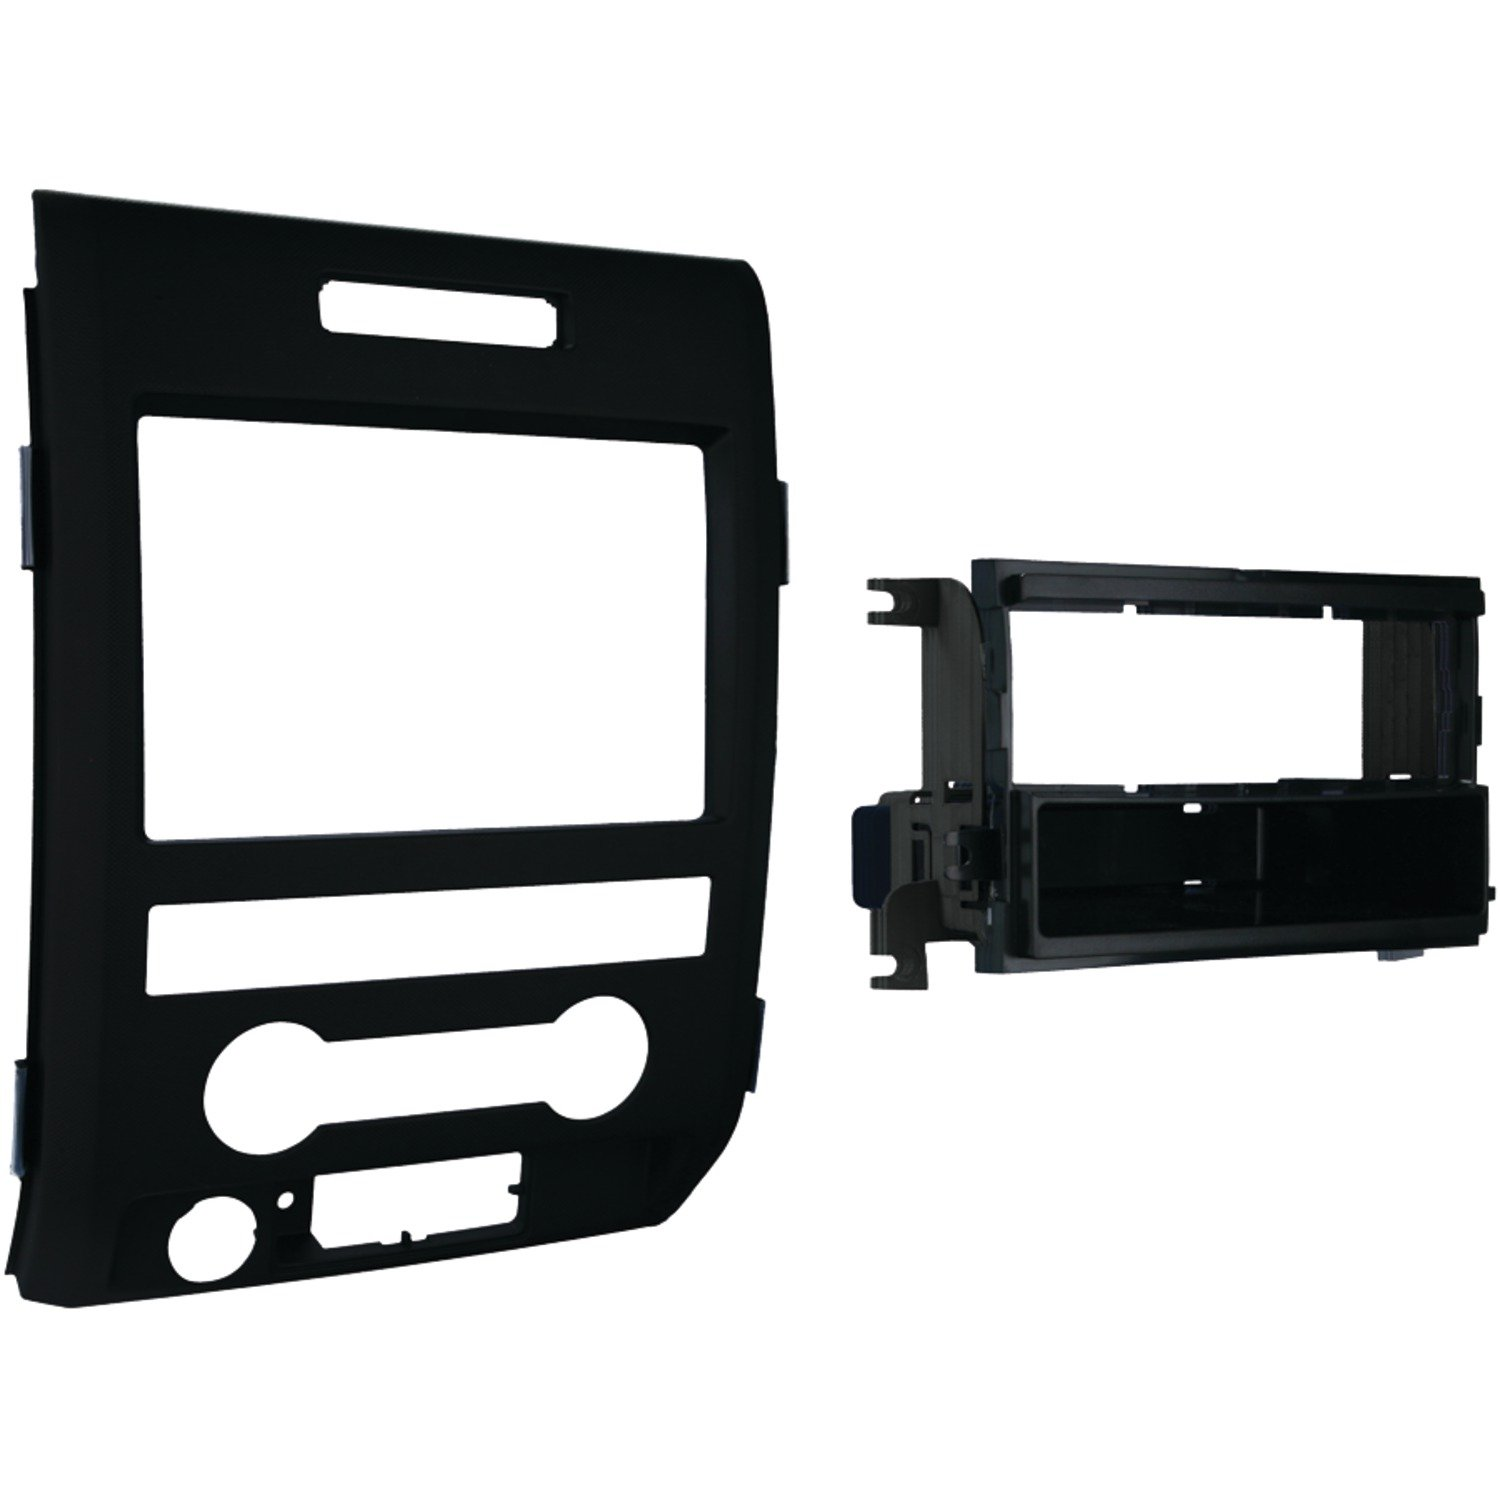 61EJfEsElrL._SL1500_ amazon com metra 99 5820b single din installation dash kit for Dash Kit for F150 at bayanpartner.co